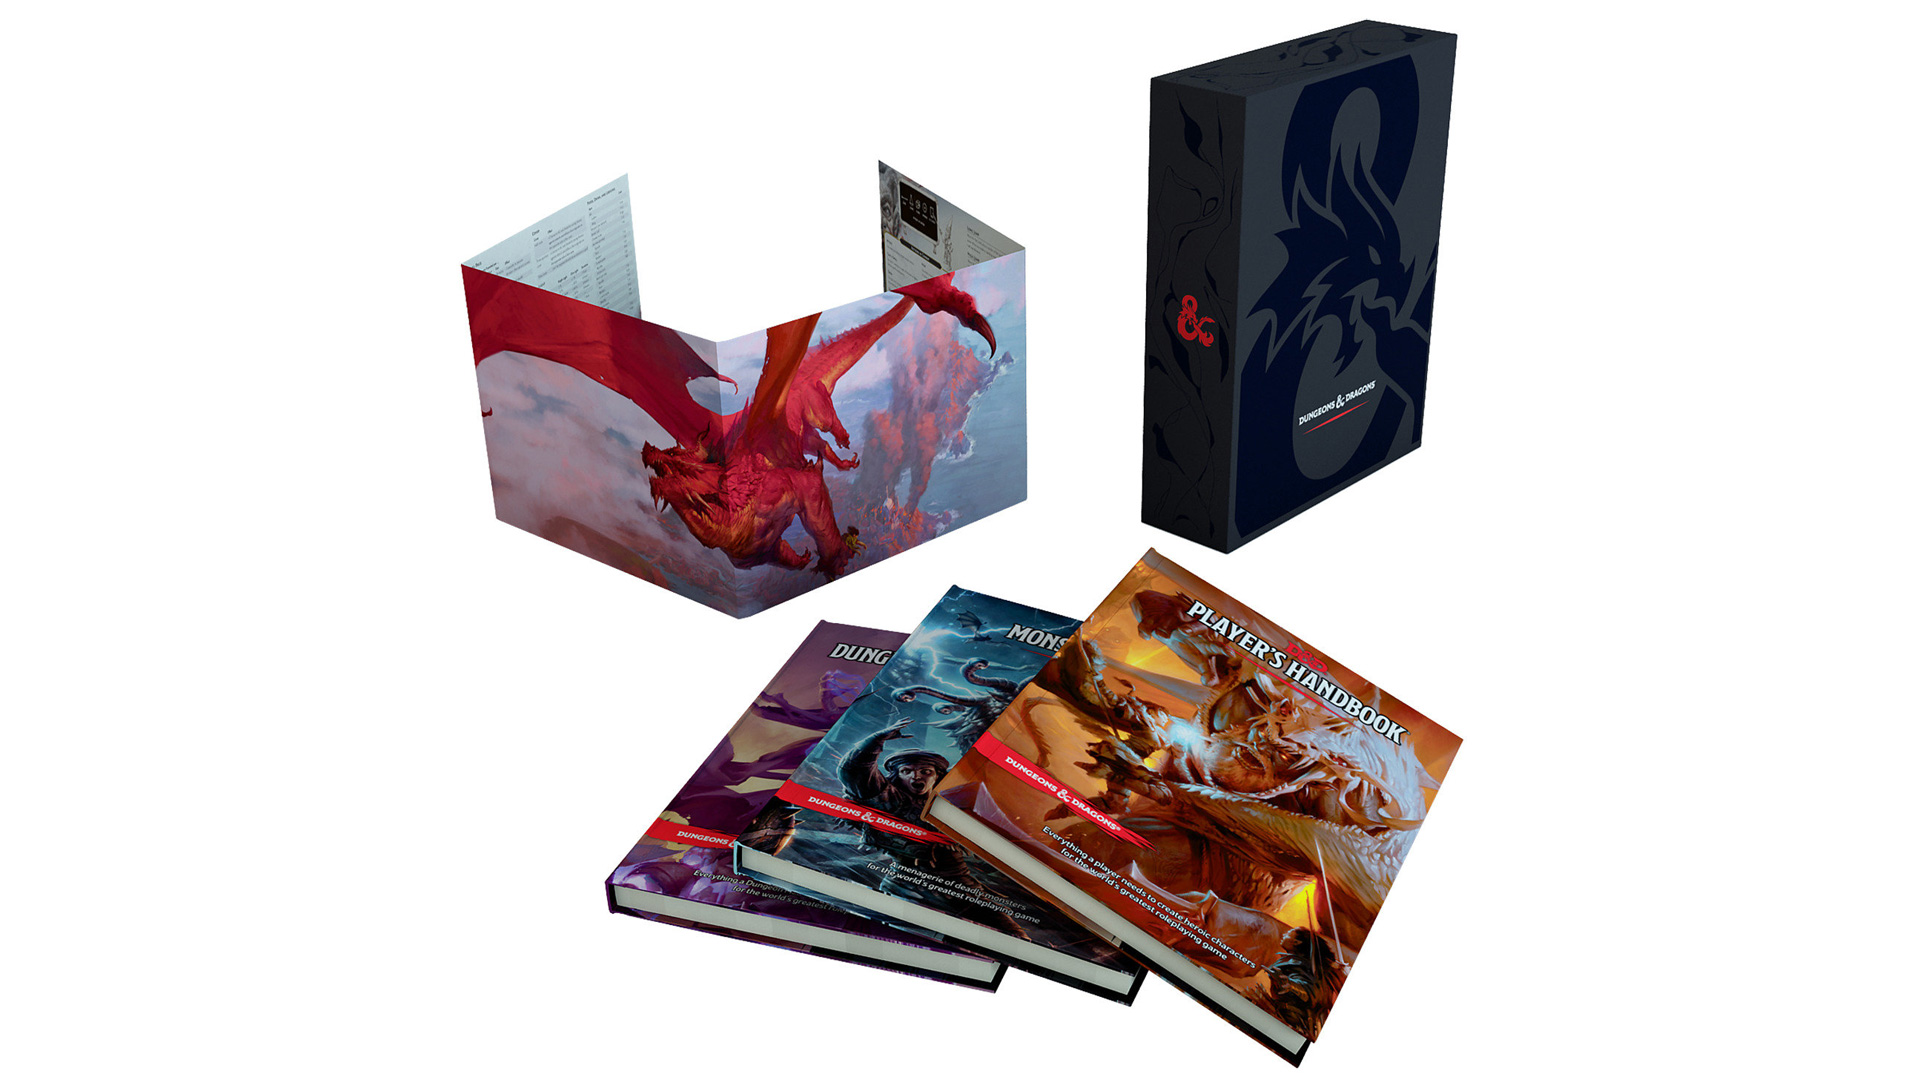 DUNGEONS & DRAGONS Core Rulebook Gift Set On Sale for 50% Off ...